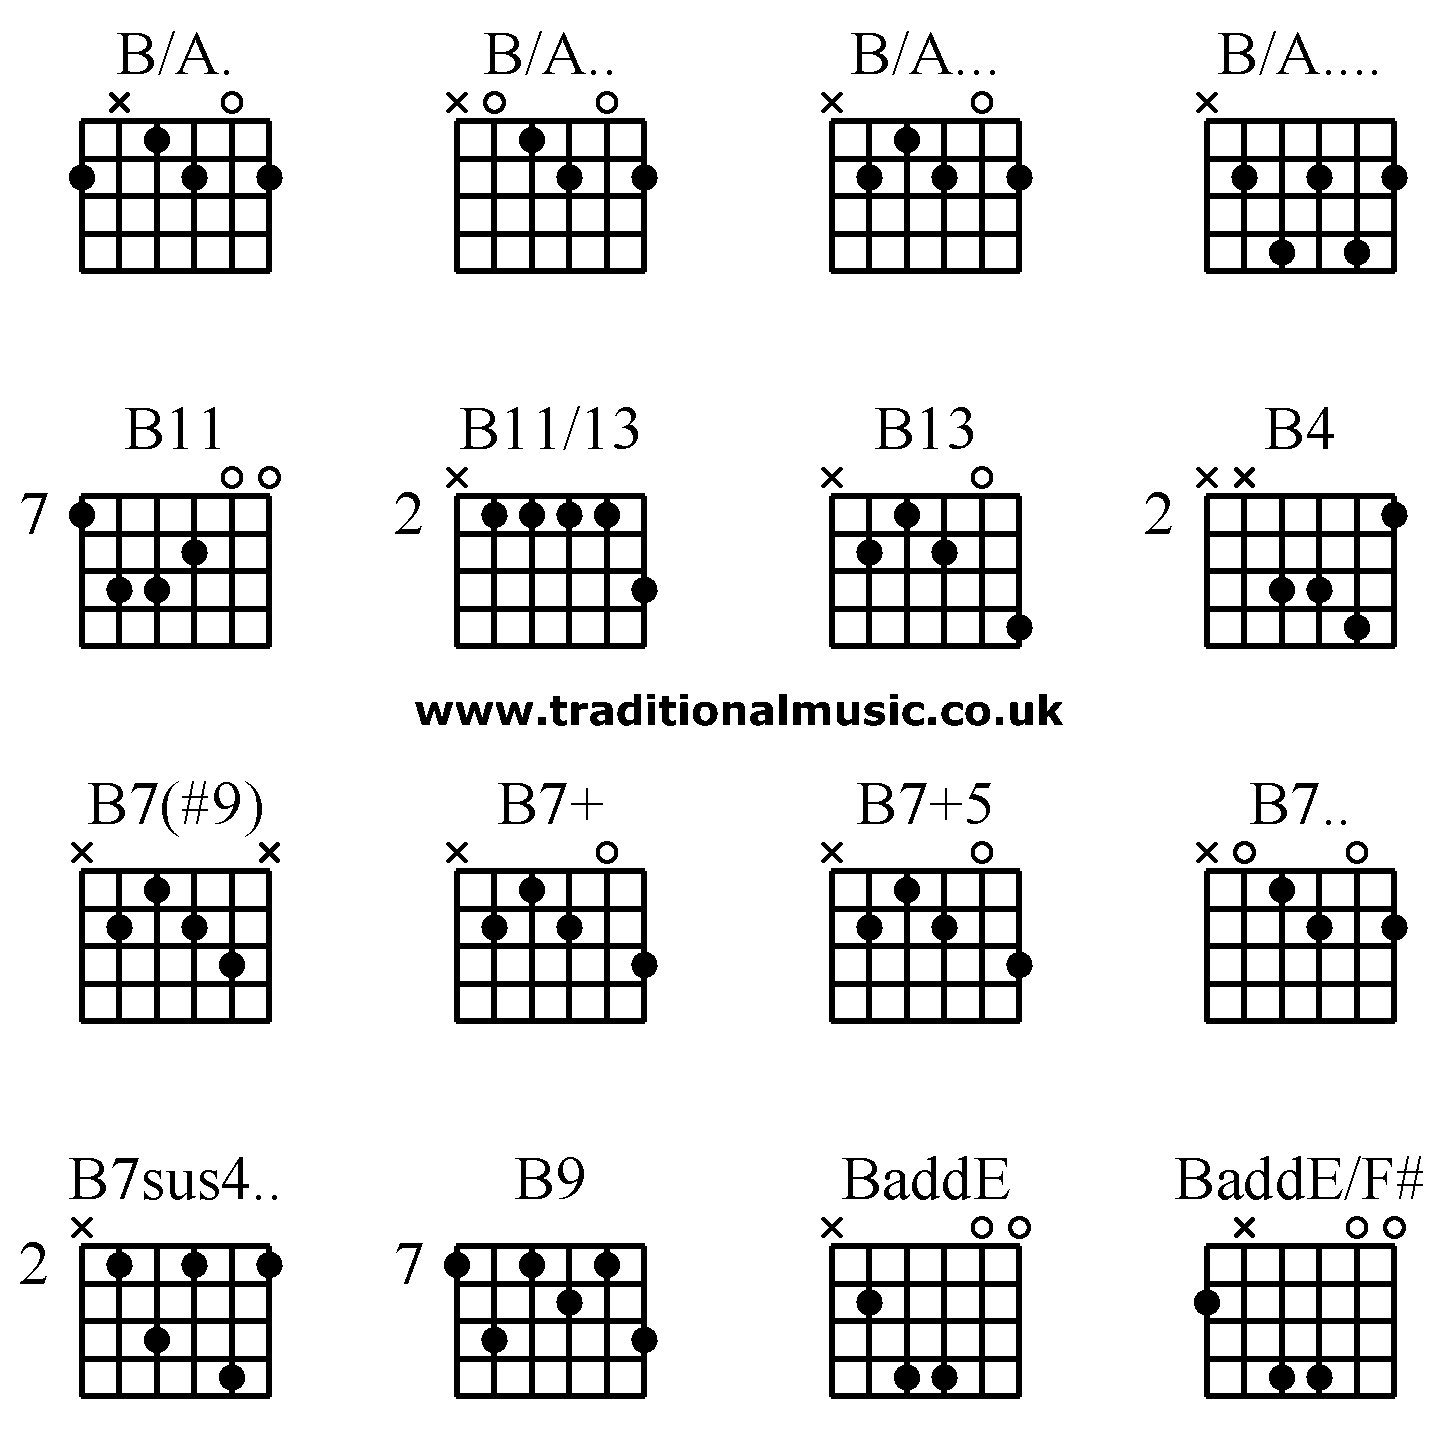 Advanced Guitar Chords B A B A B A B A B11 B11